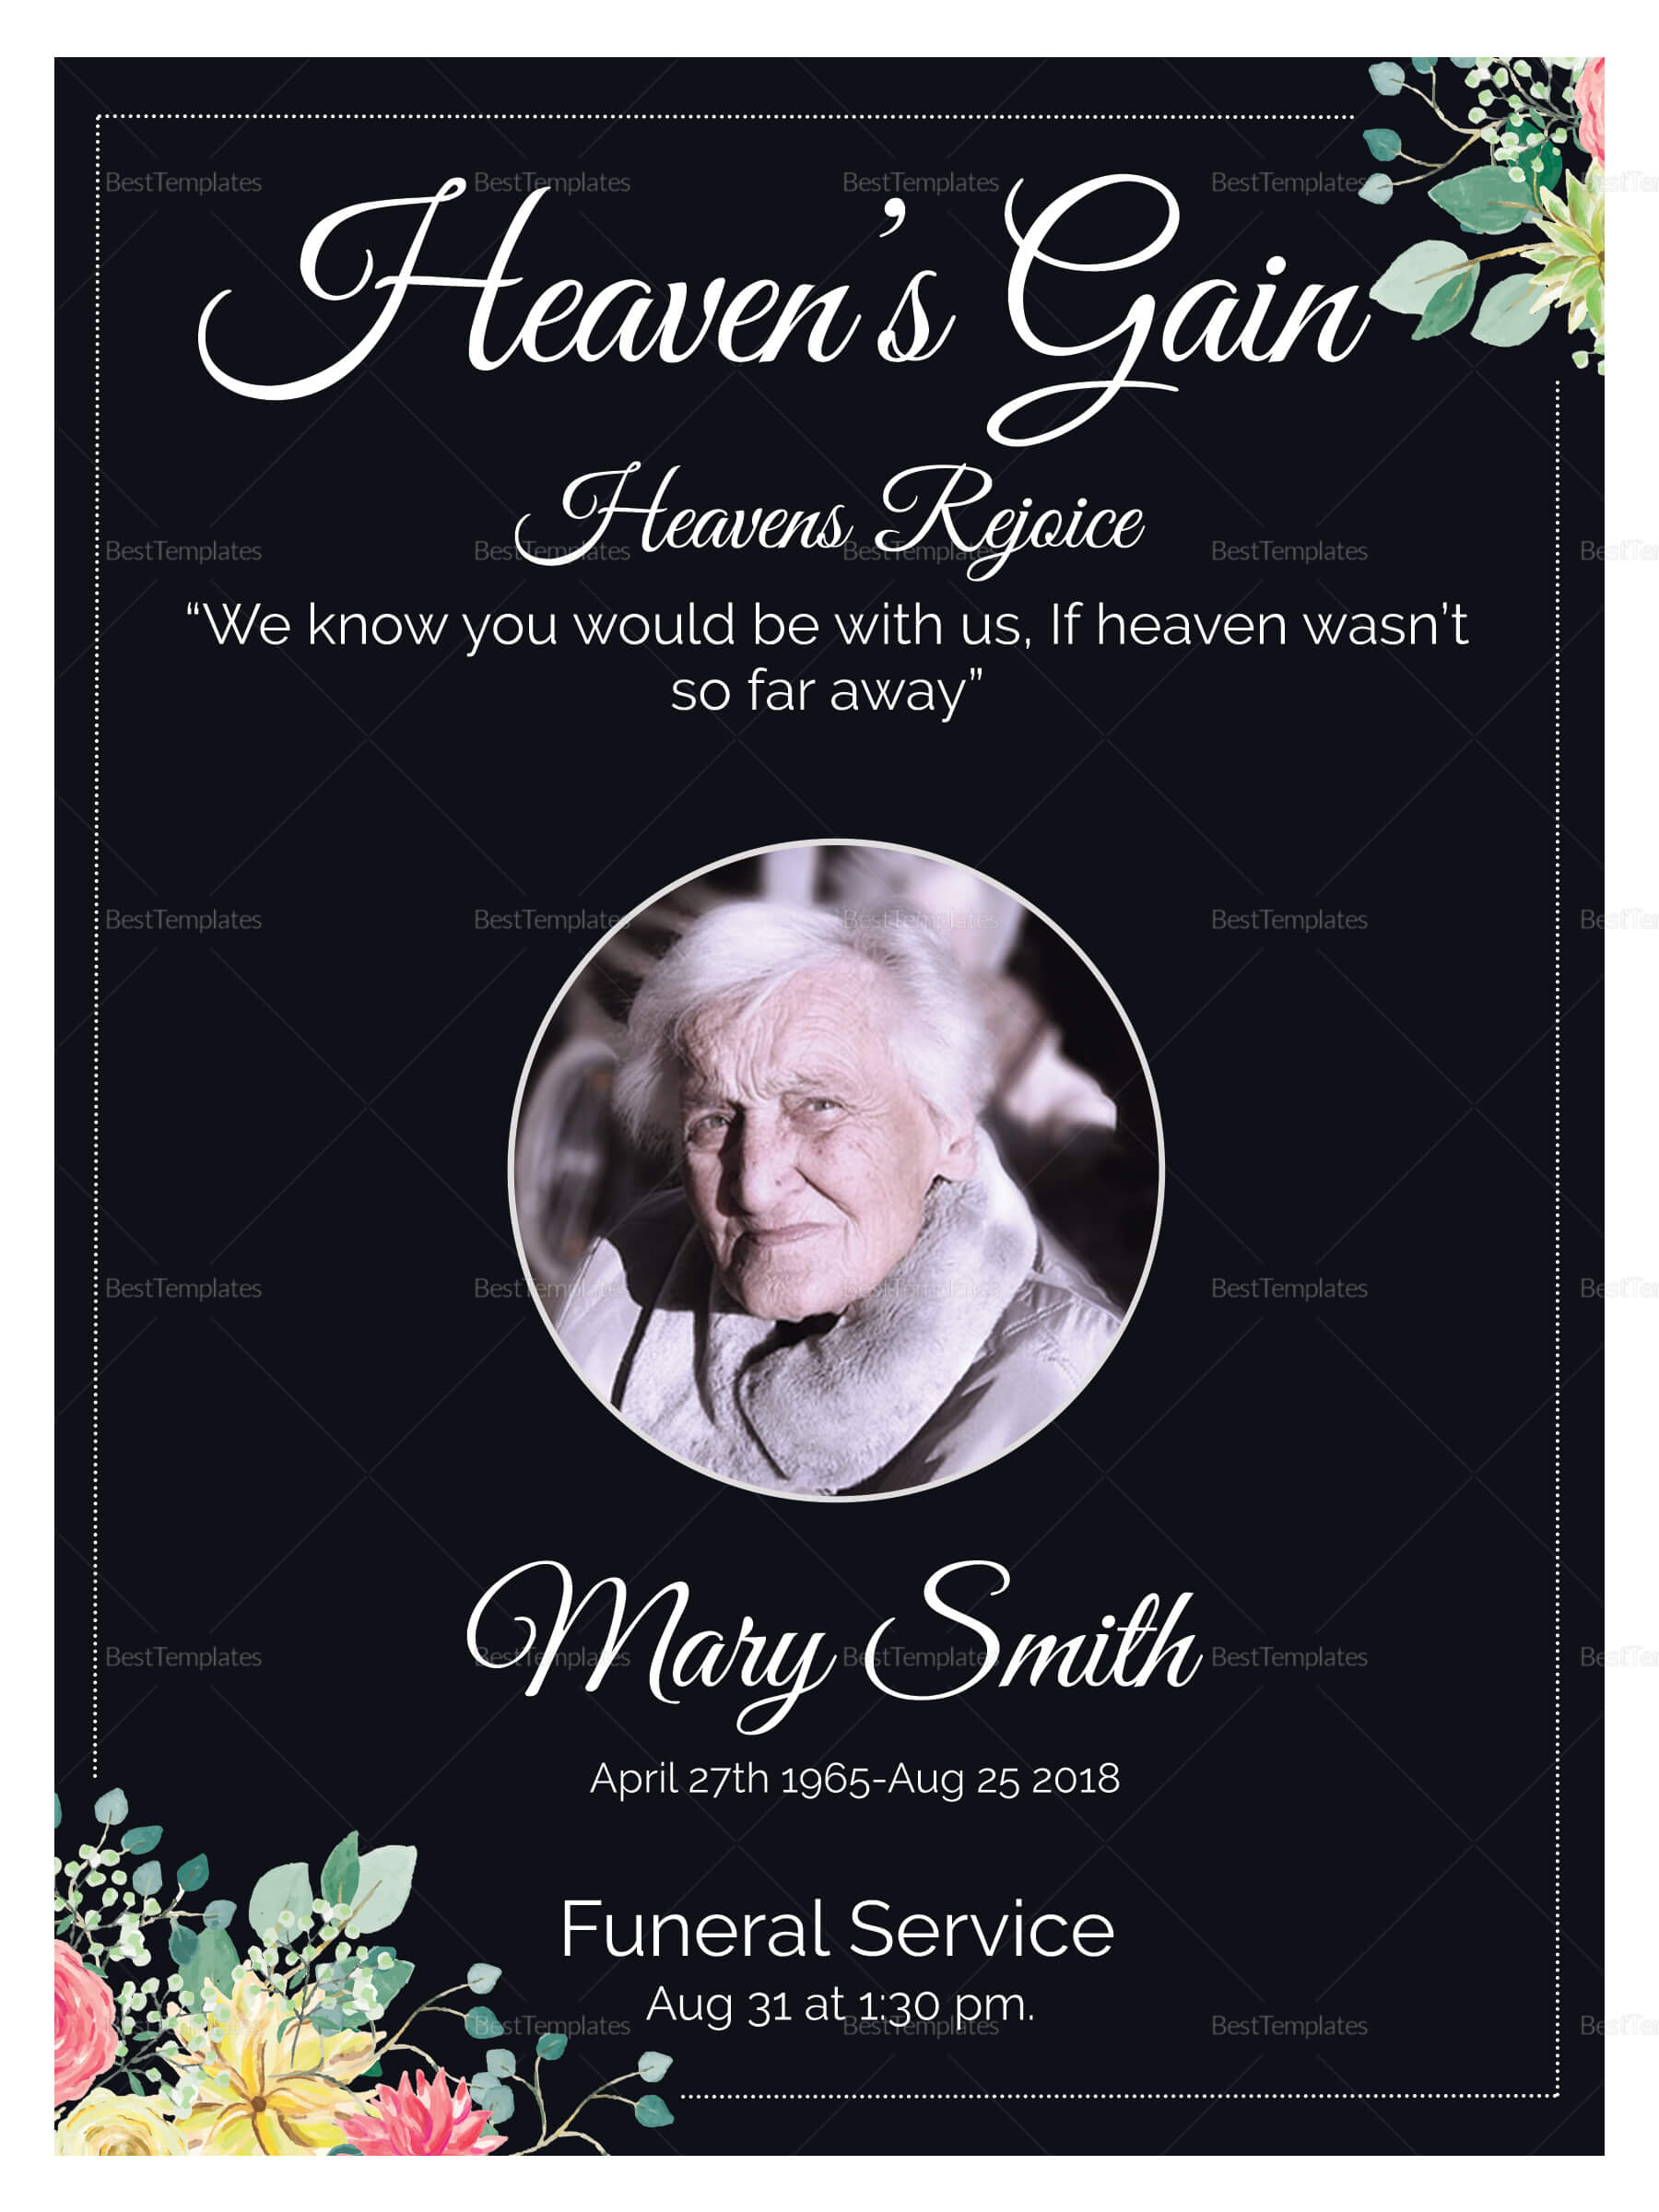 Eulogy Funeral Invitation Card Template throughout Funeral Invitation Card Template